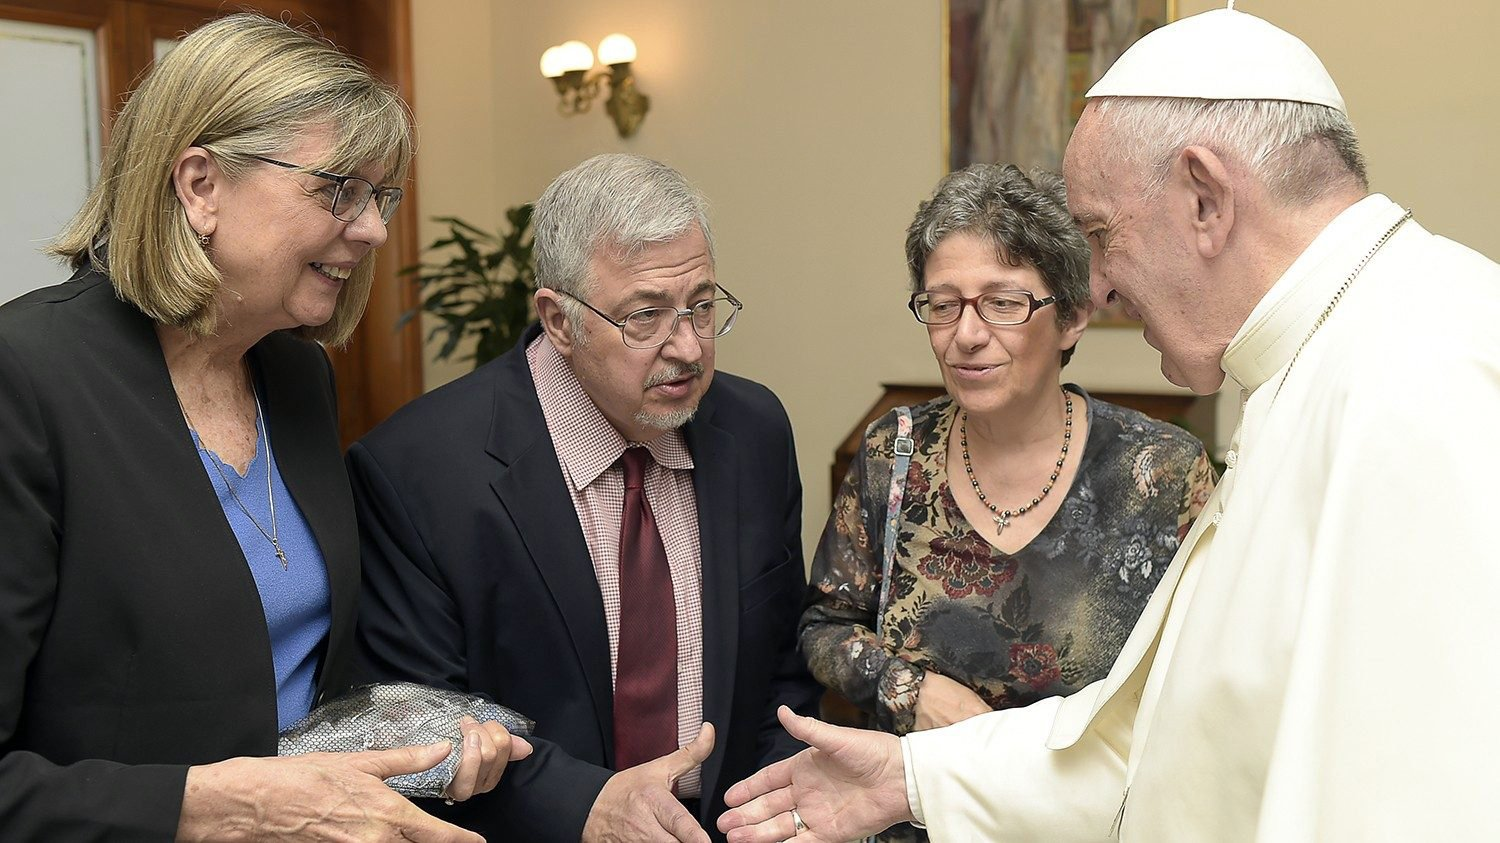 Dale Recinella, center, and his wife Susan, left, meet with Pope Francis at the Vatican in 2019. Photo via Vatican News